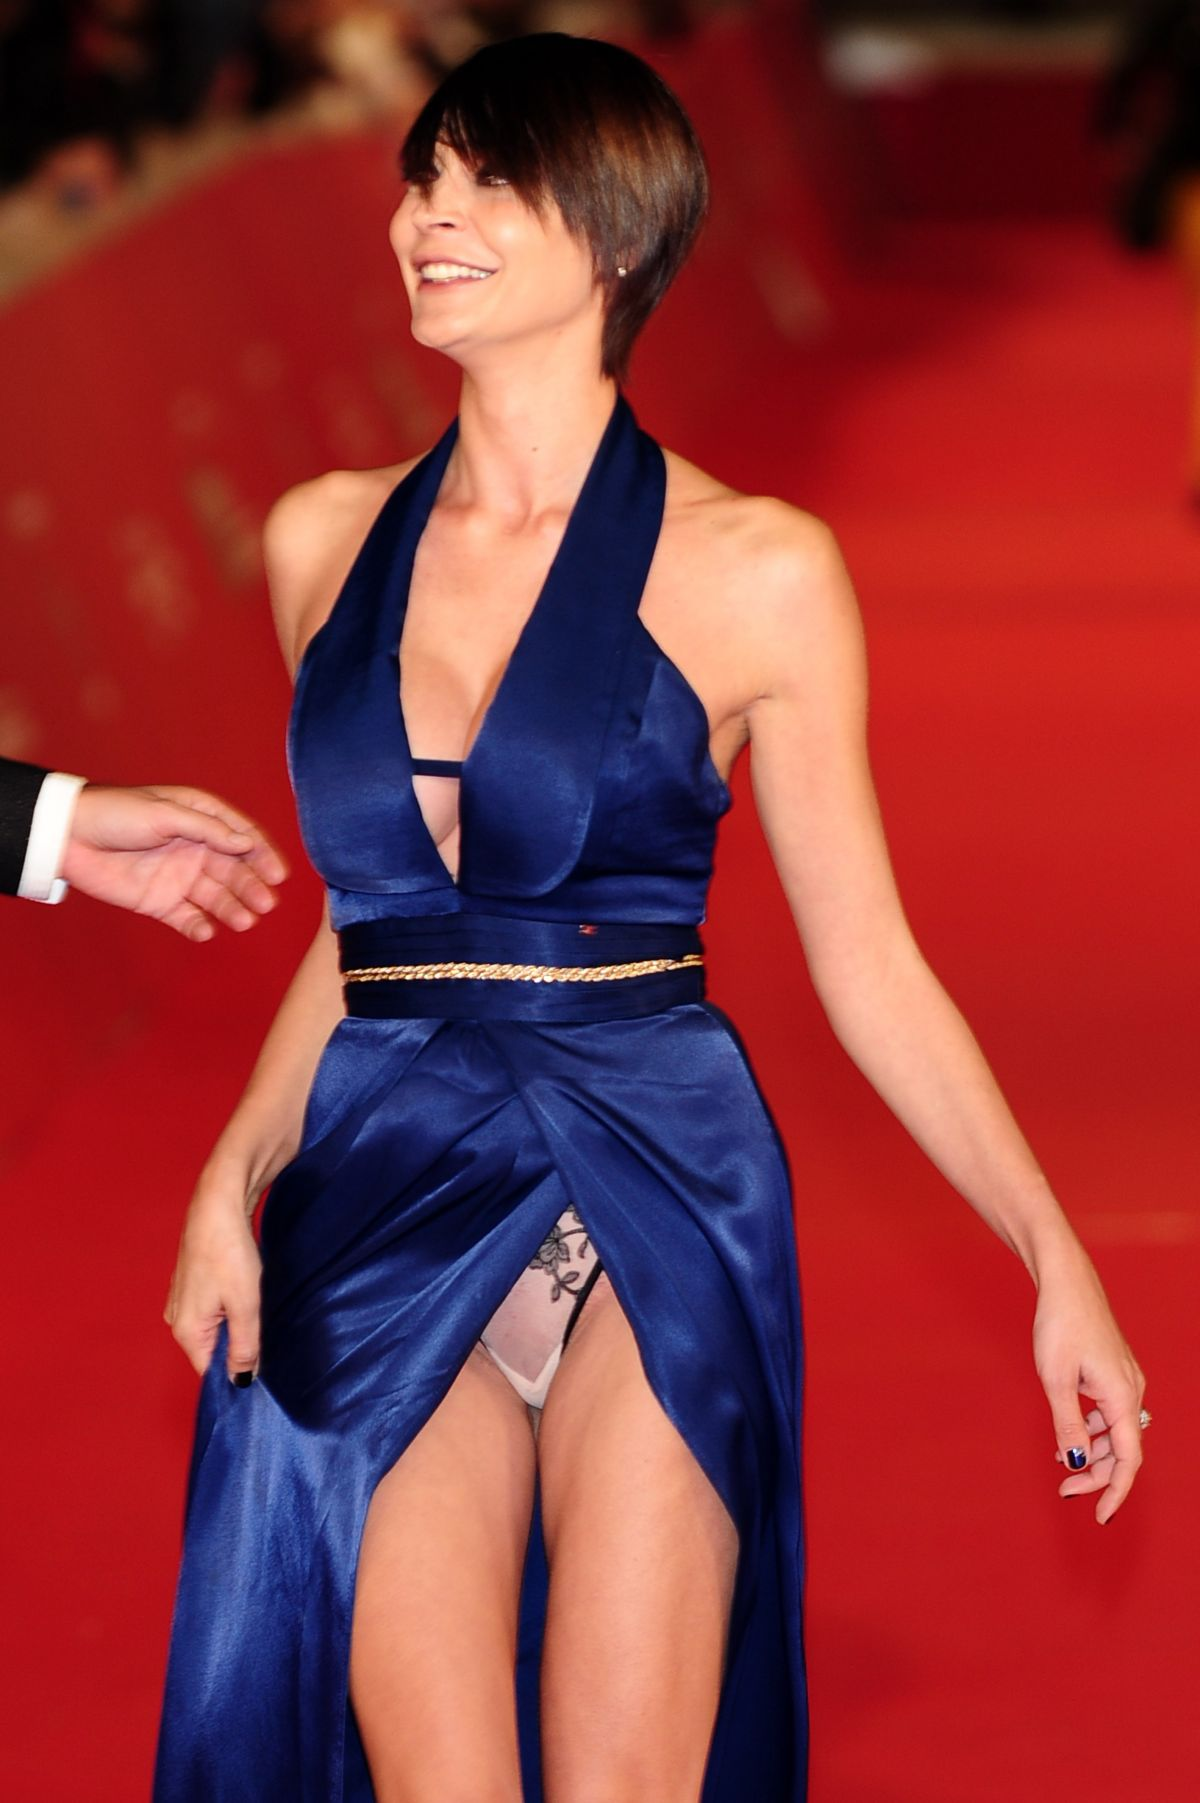 Kim stewarts red carpet upskirt pictures